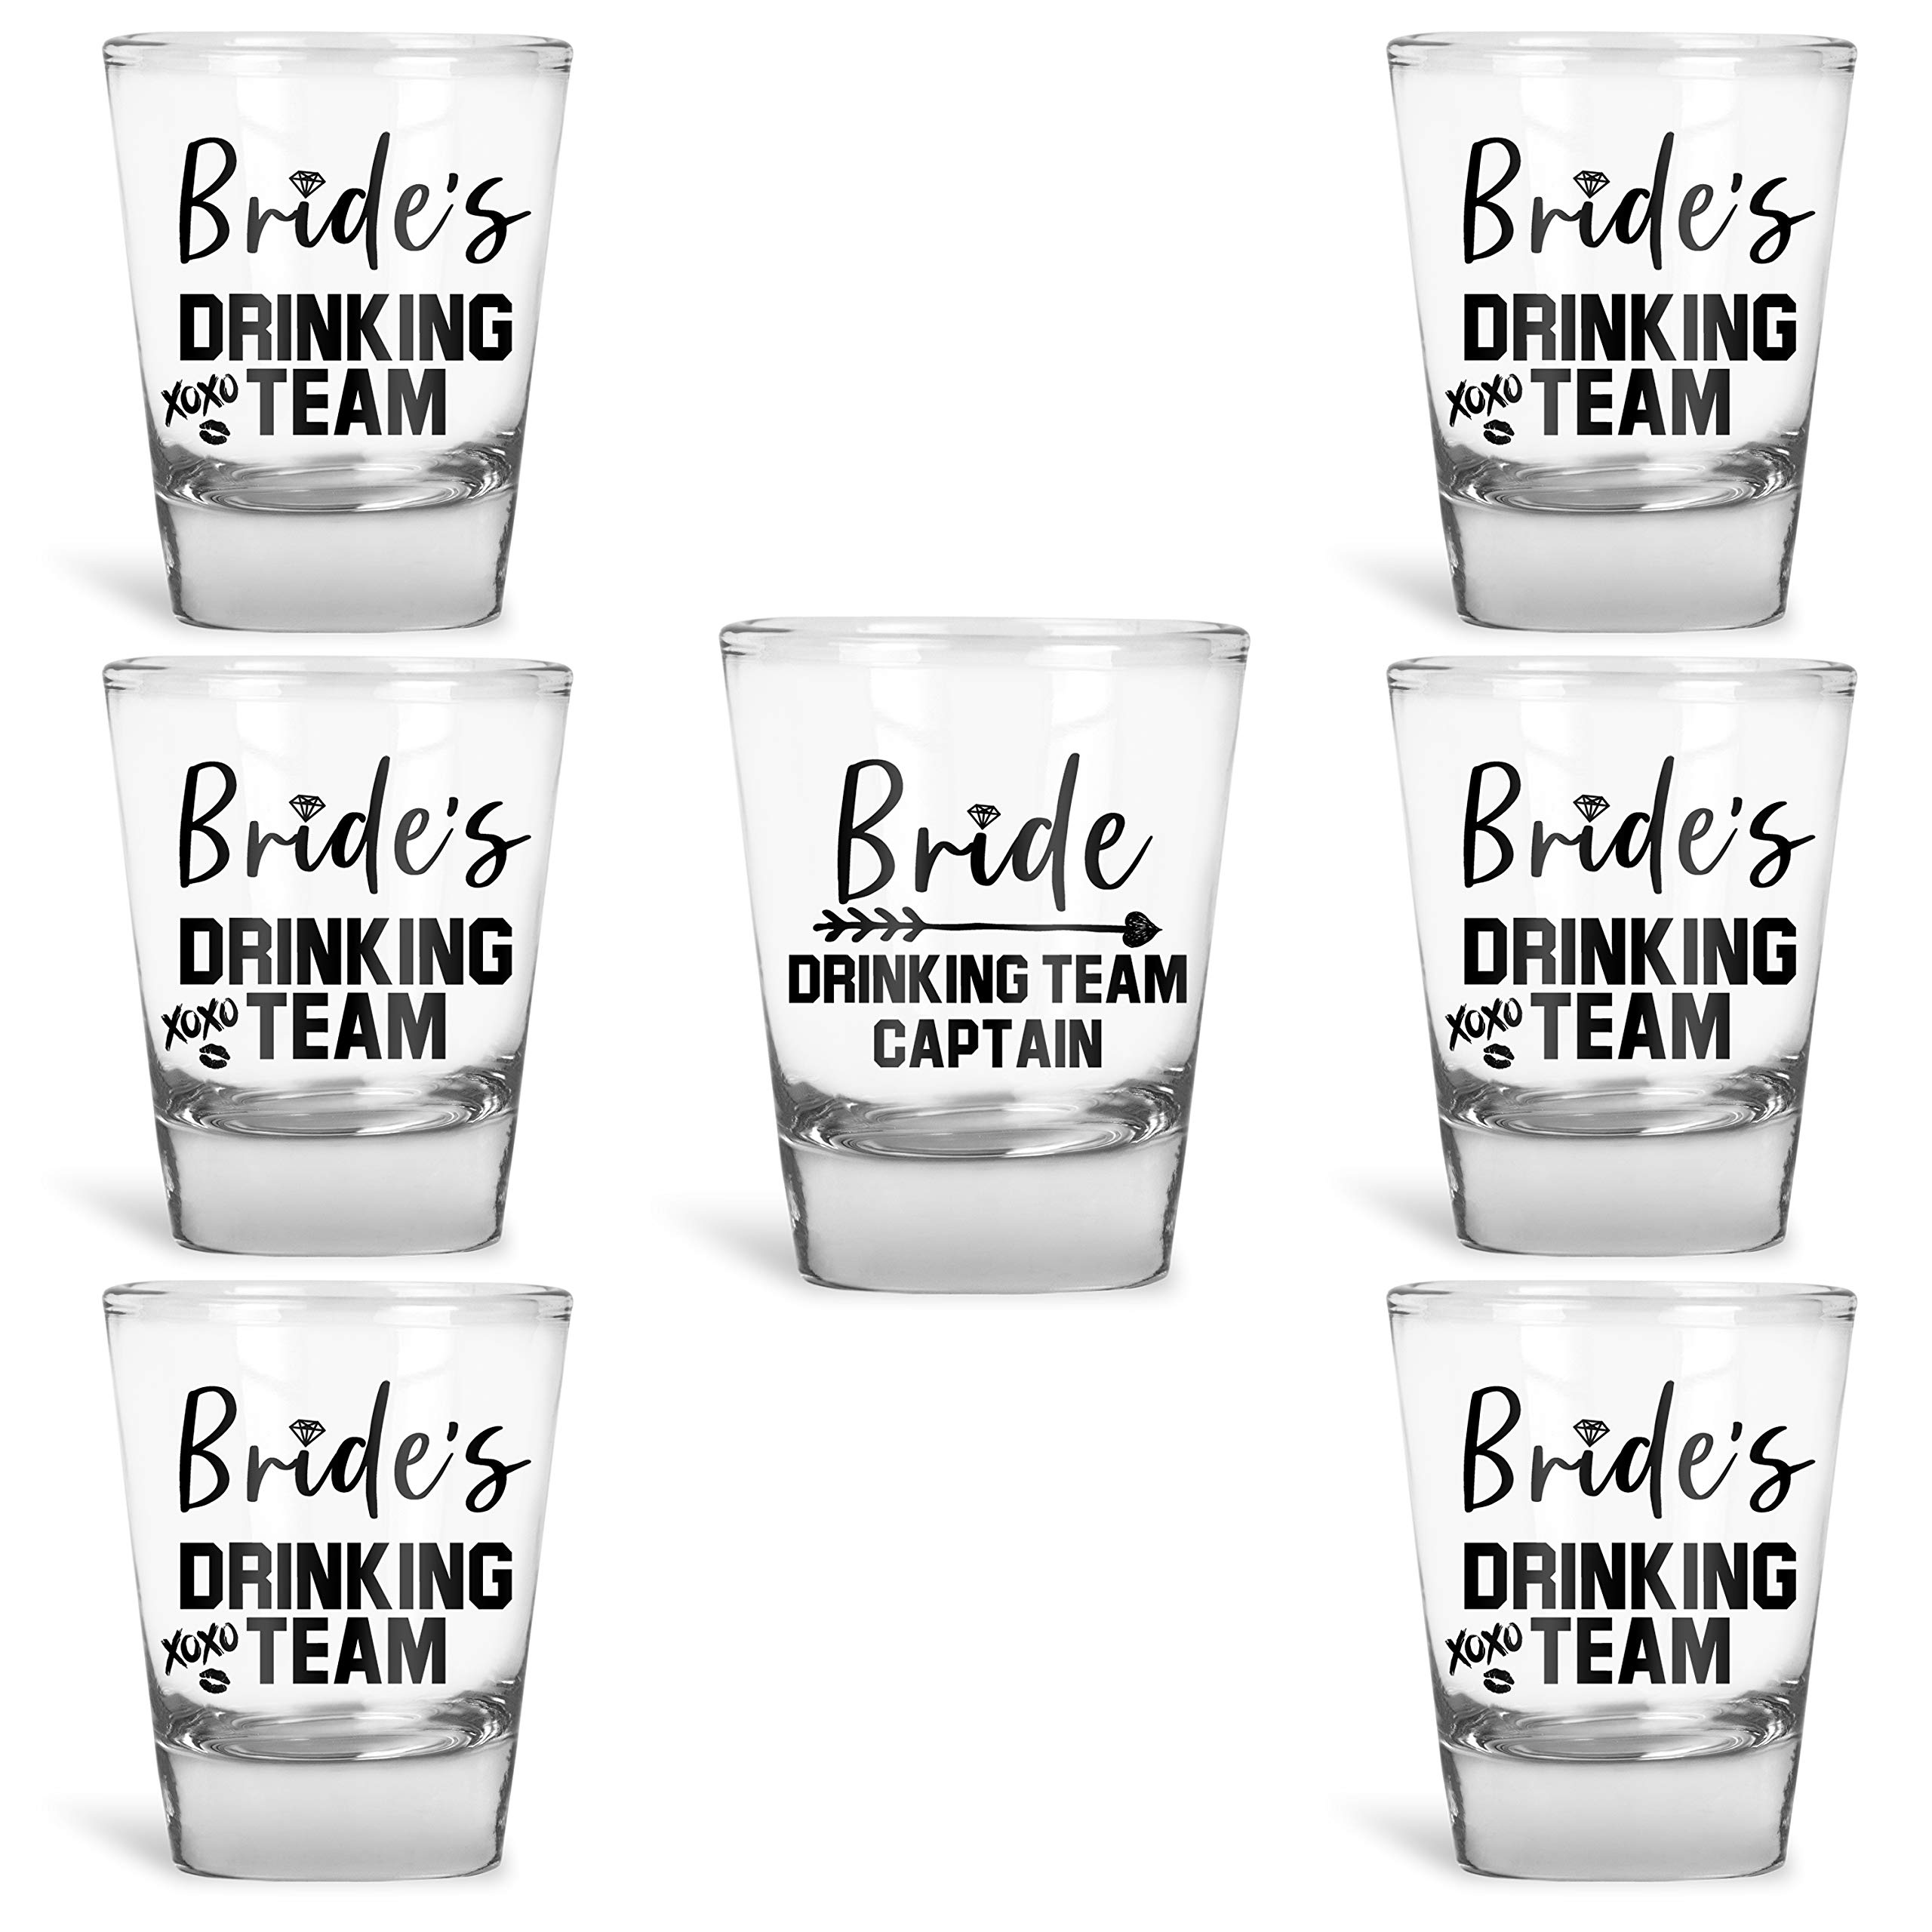 Bridesmaid Gifts Bride's Drinking Team Shot Glasses - Pack of 6 Bride's Drinking Team Member + 1 Bride's Drinking Team Captain - 1.5 oz - Bachelorette Party Favors